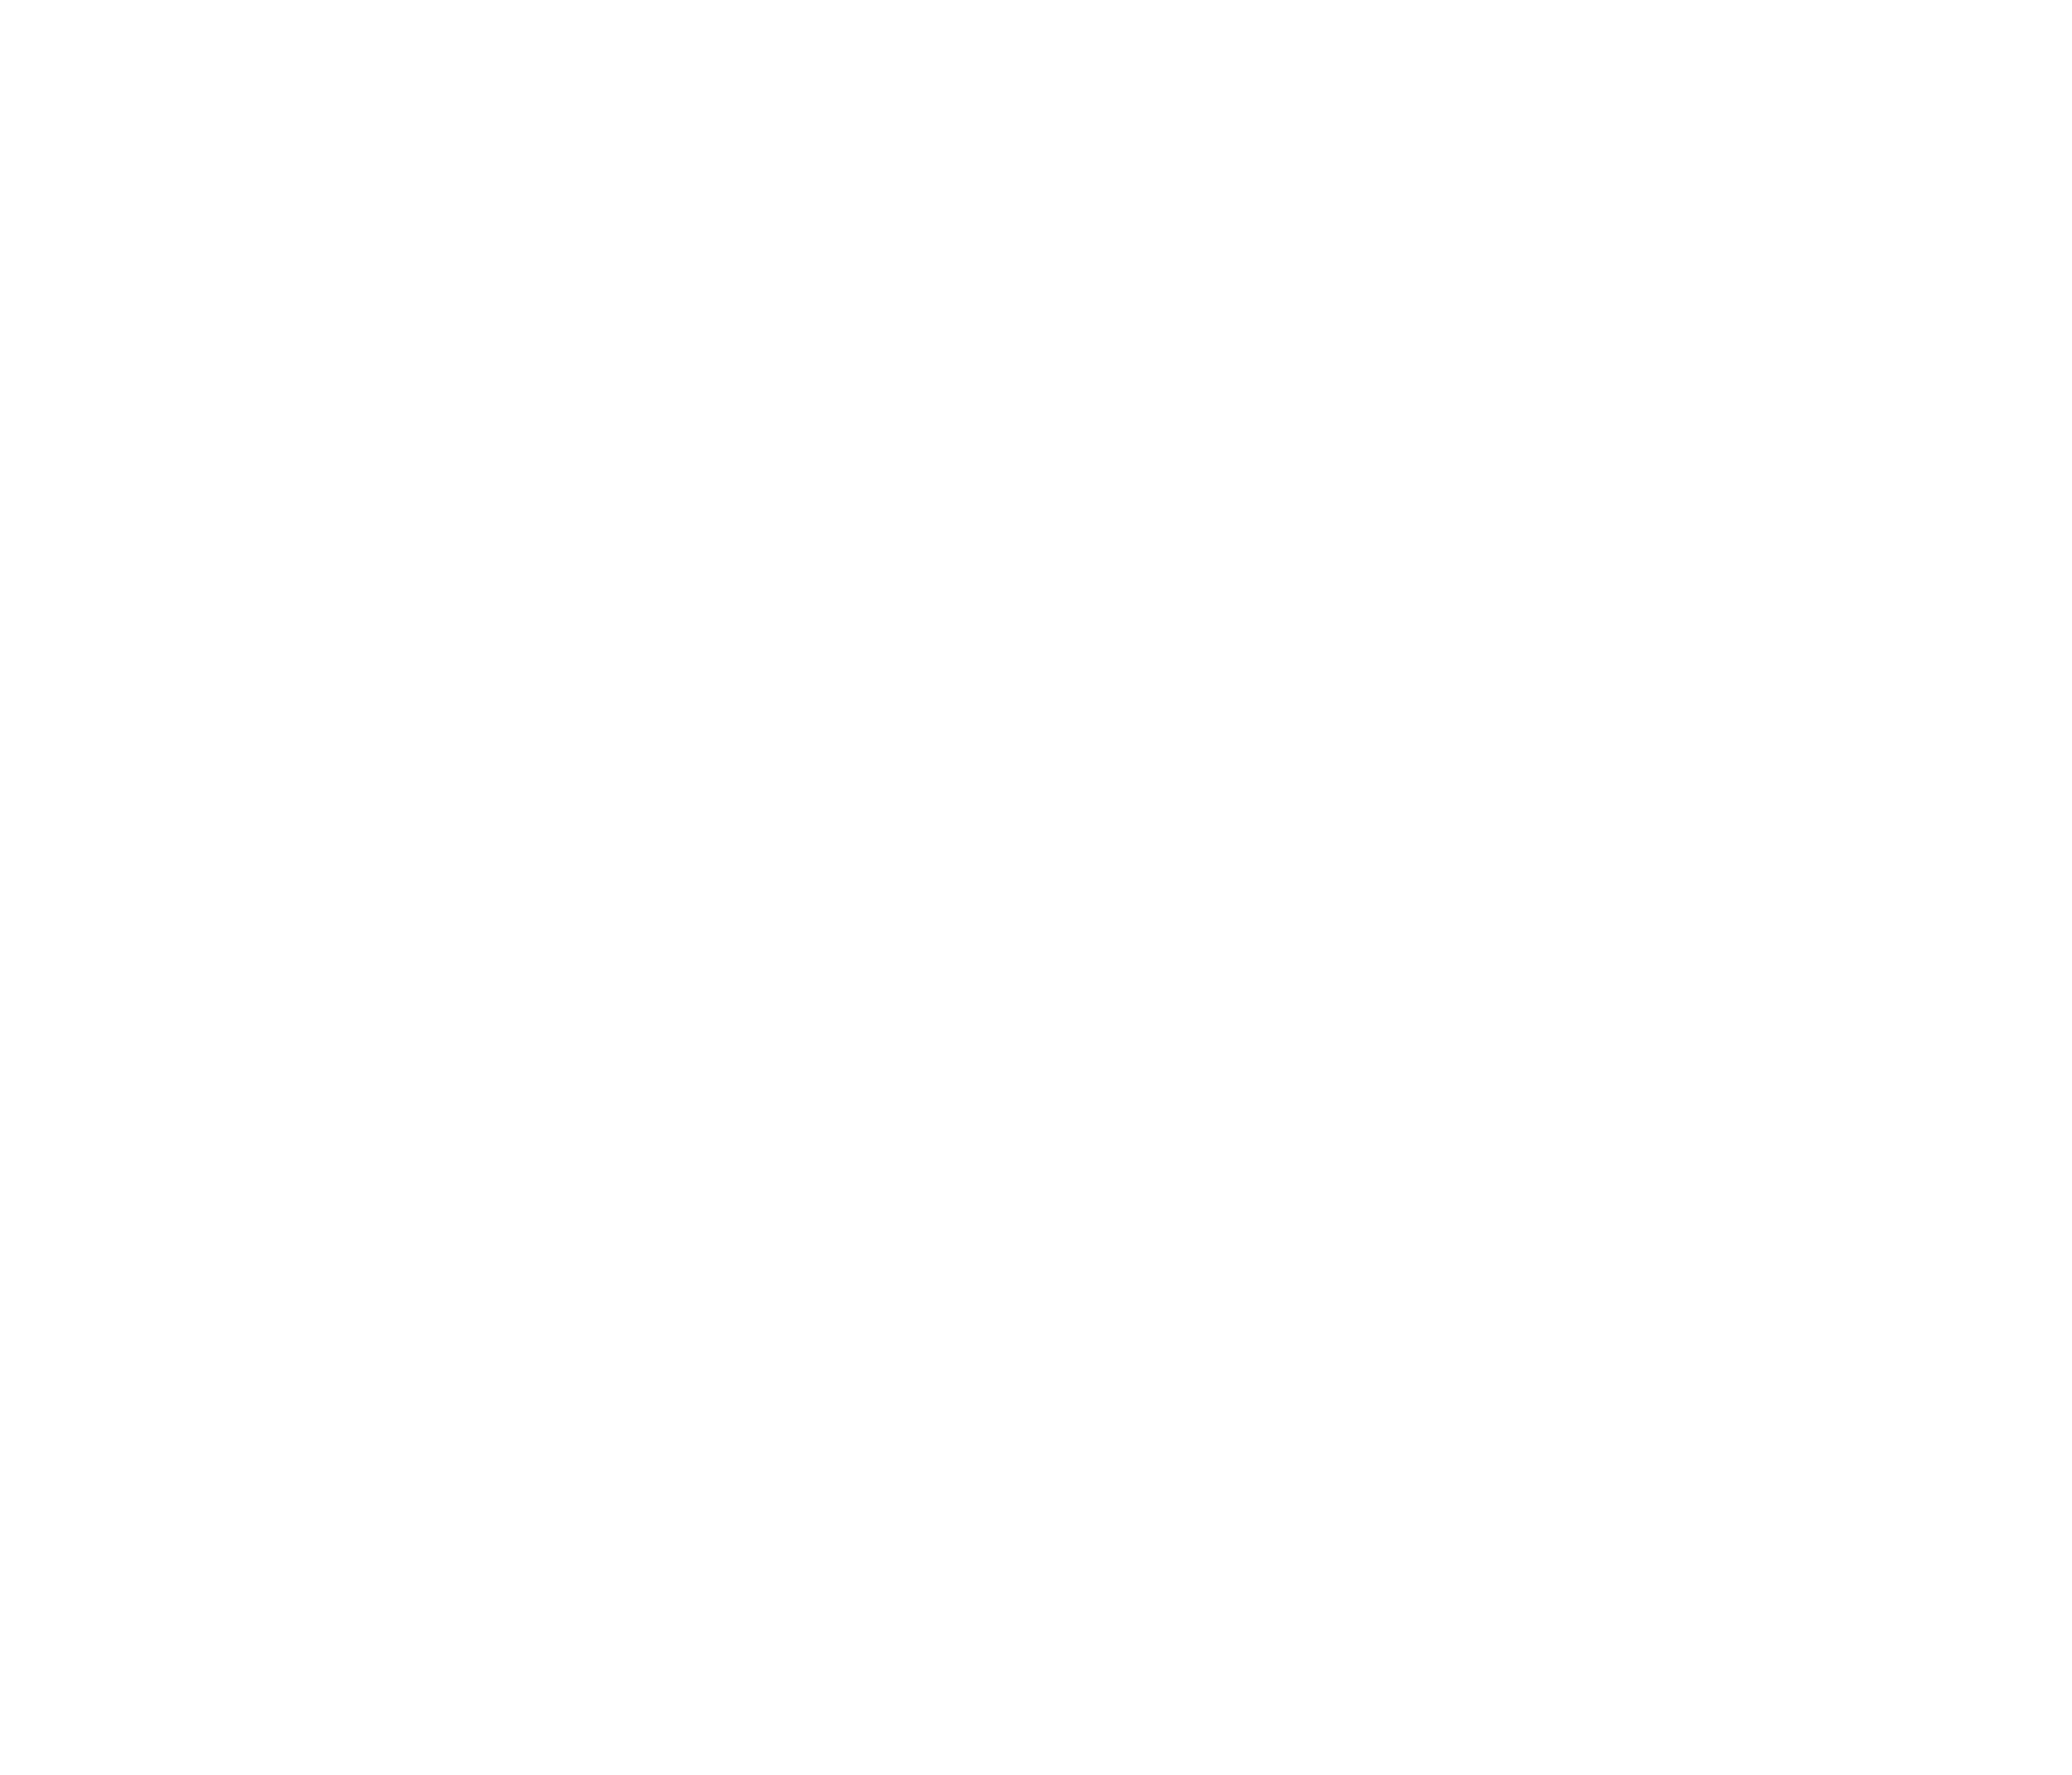 A white out version of The Resource Network logo